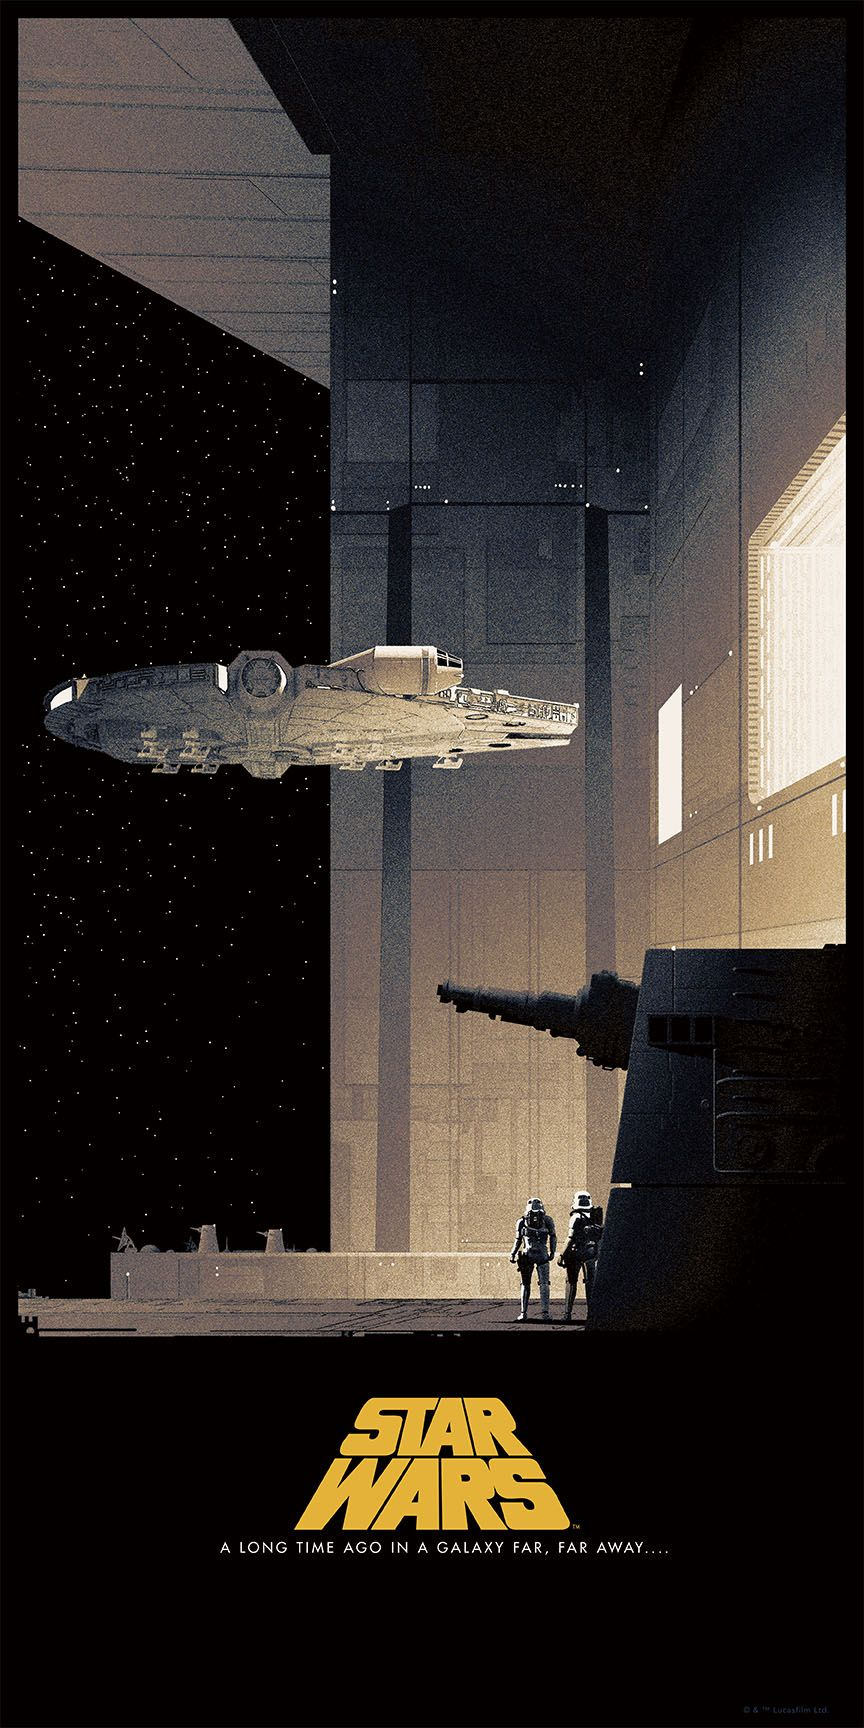 star wars posters by matt ferguson for bottleneck gallery. Black Bedroom Furniture Sets. Home Design Ideas